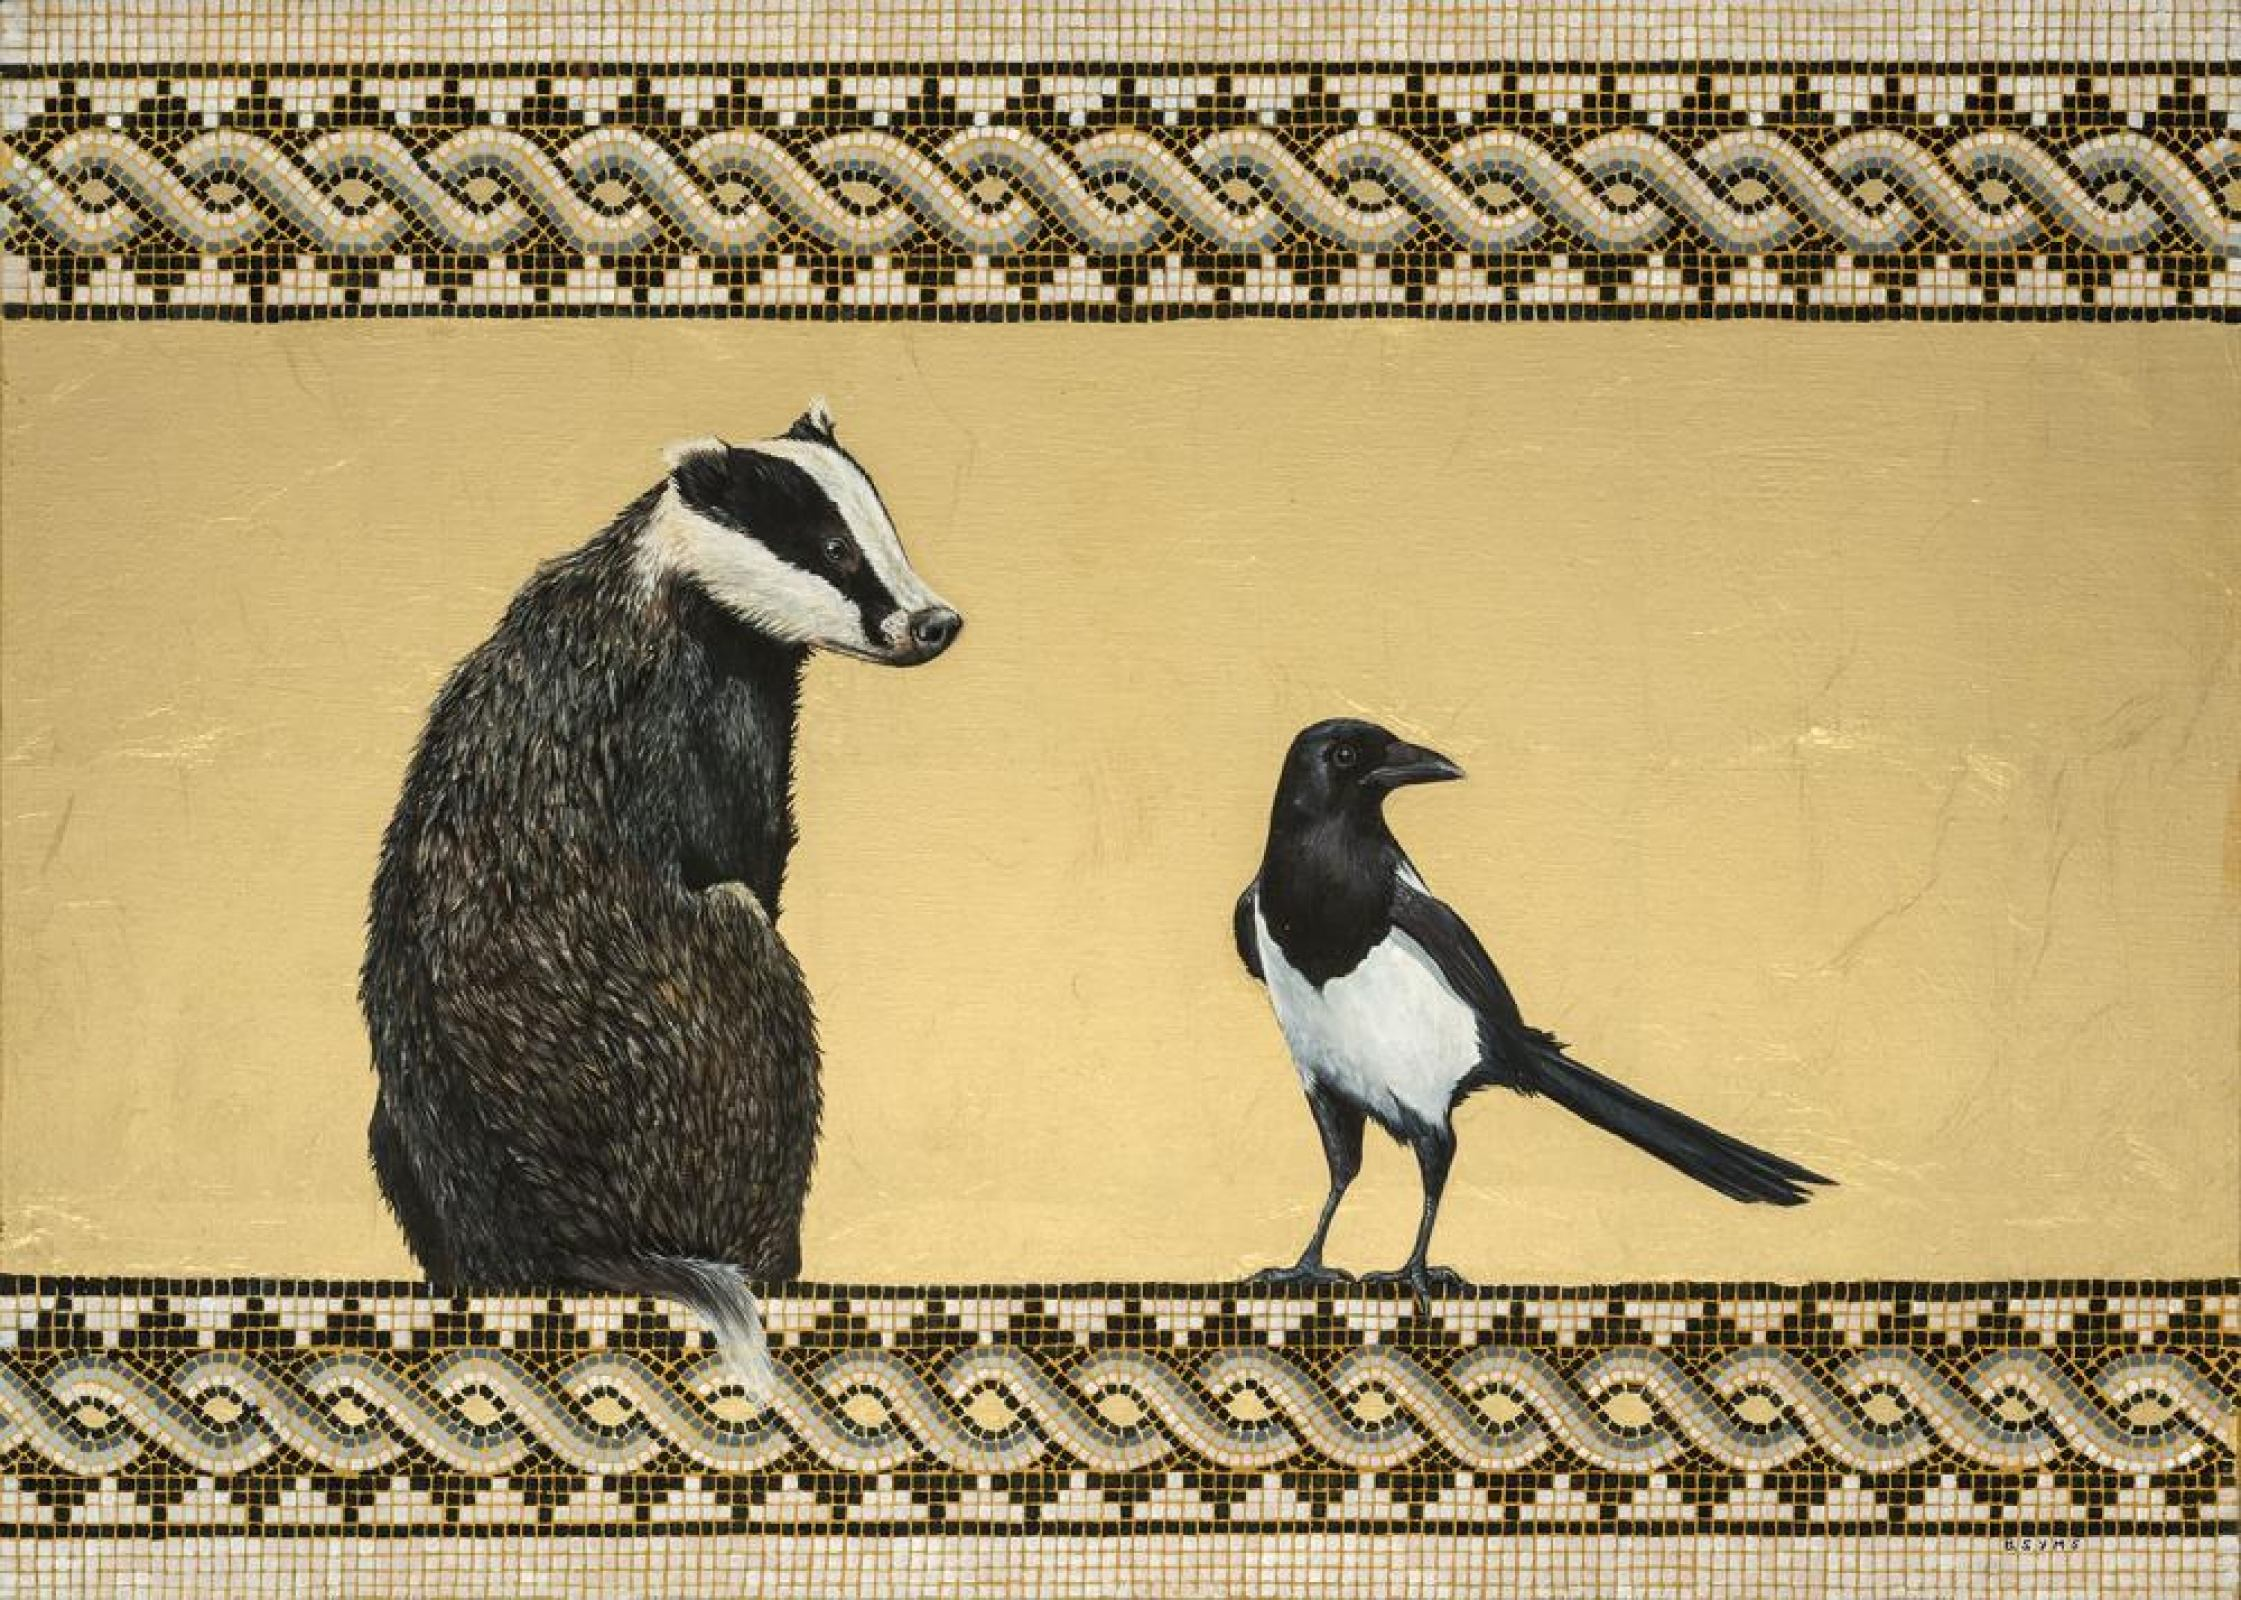 painting of magpie and badger gold leaf and mosaic